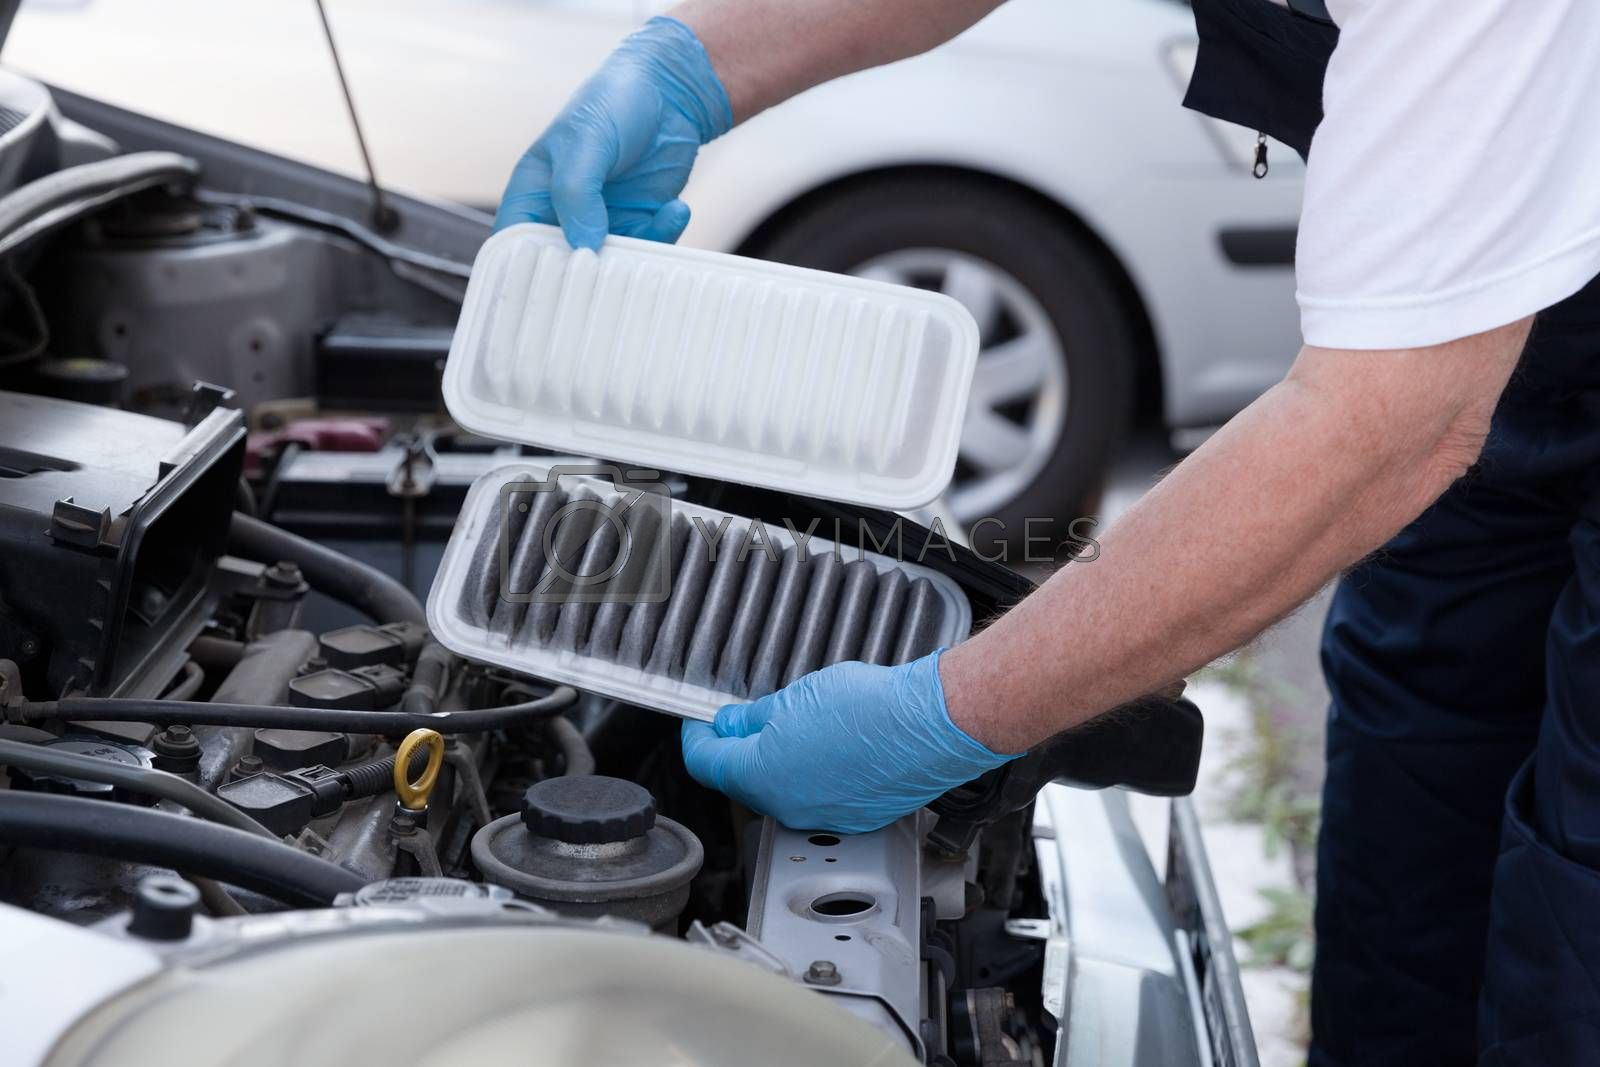 Auto mechanic wearing protective work gloves holds dirty and clean air filters over a car engine. Internal combustion engine air filters.